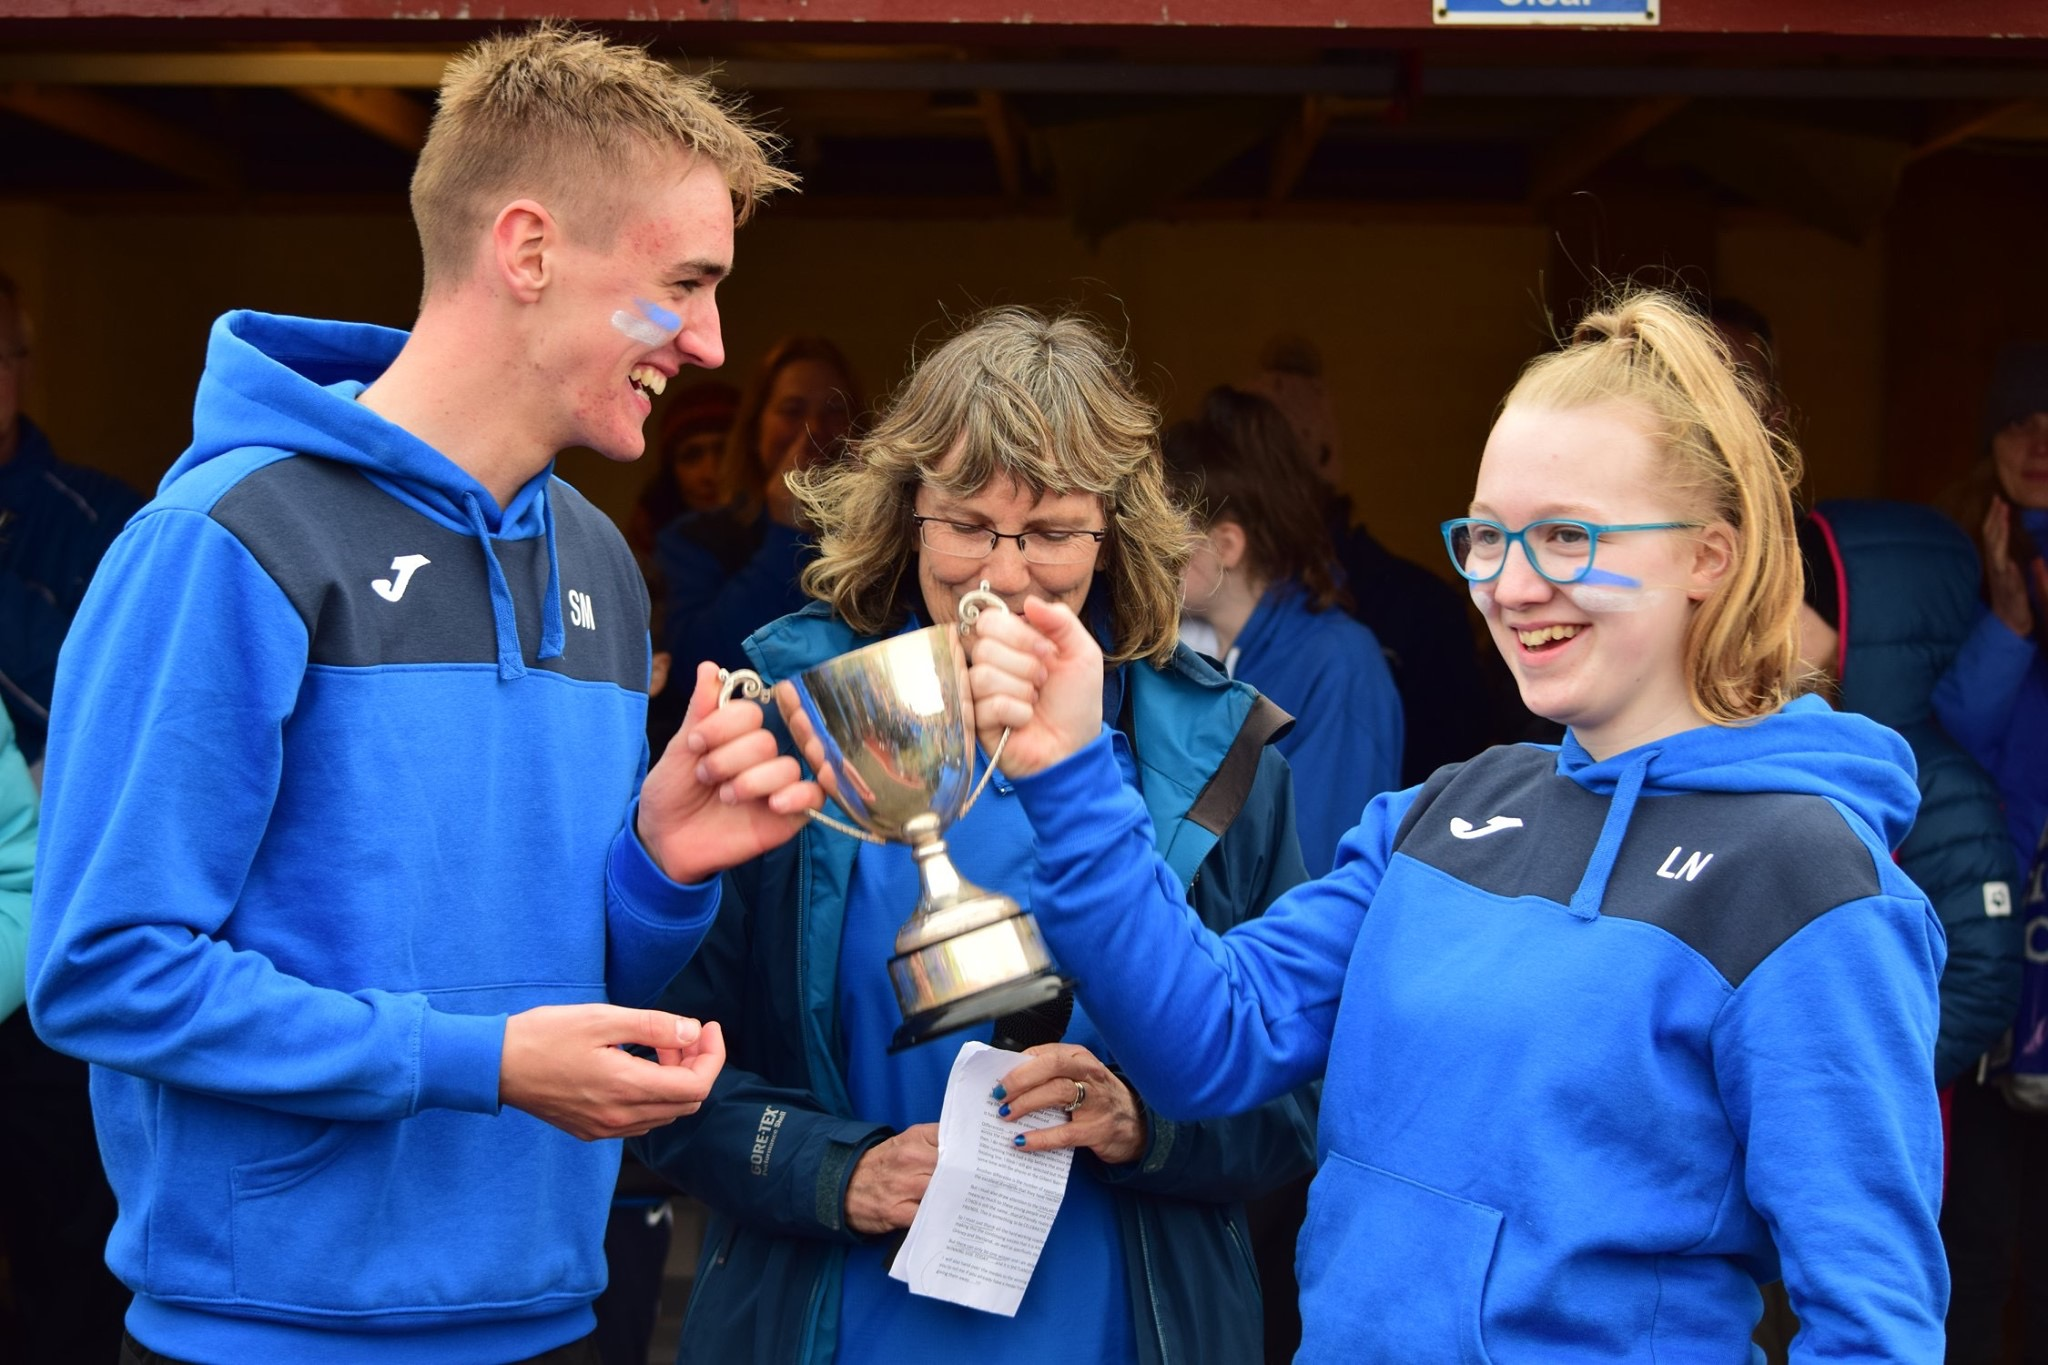 Shetland beats neighbours Orkney - Shetland retains the Ian Williamson Cup by a score of 56-40